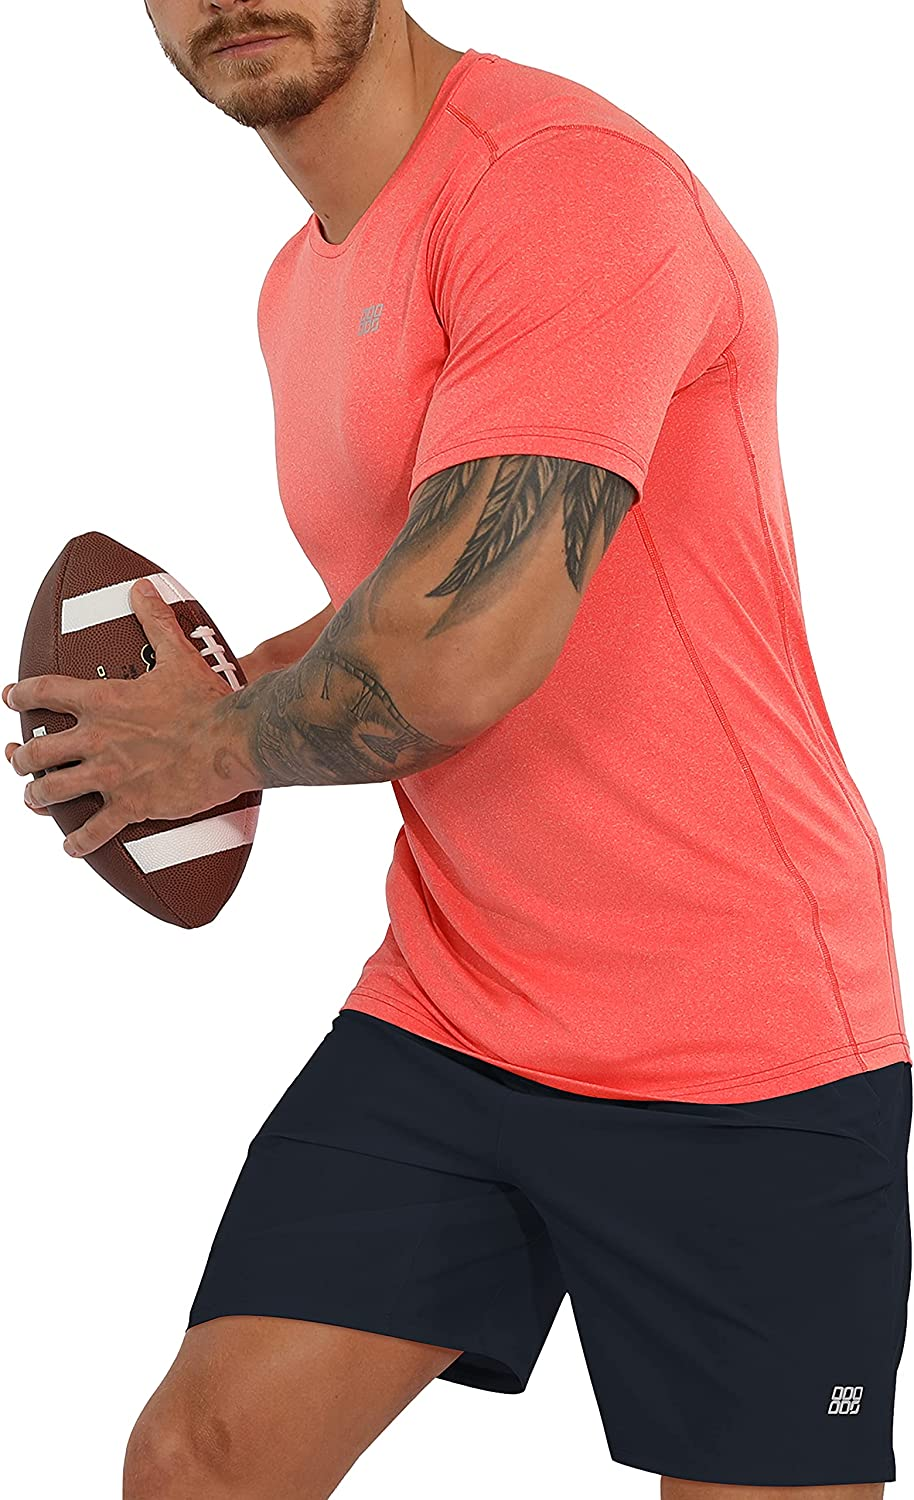 ODODOS Men's Quick Dry Fitted Athletic T-Shirts UPF 50+ Sun Protection SPF Crew Neck Running Short Sleeve Tops